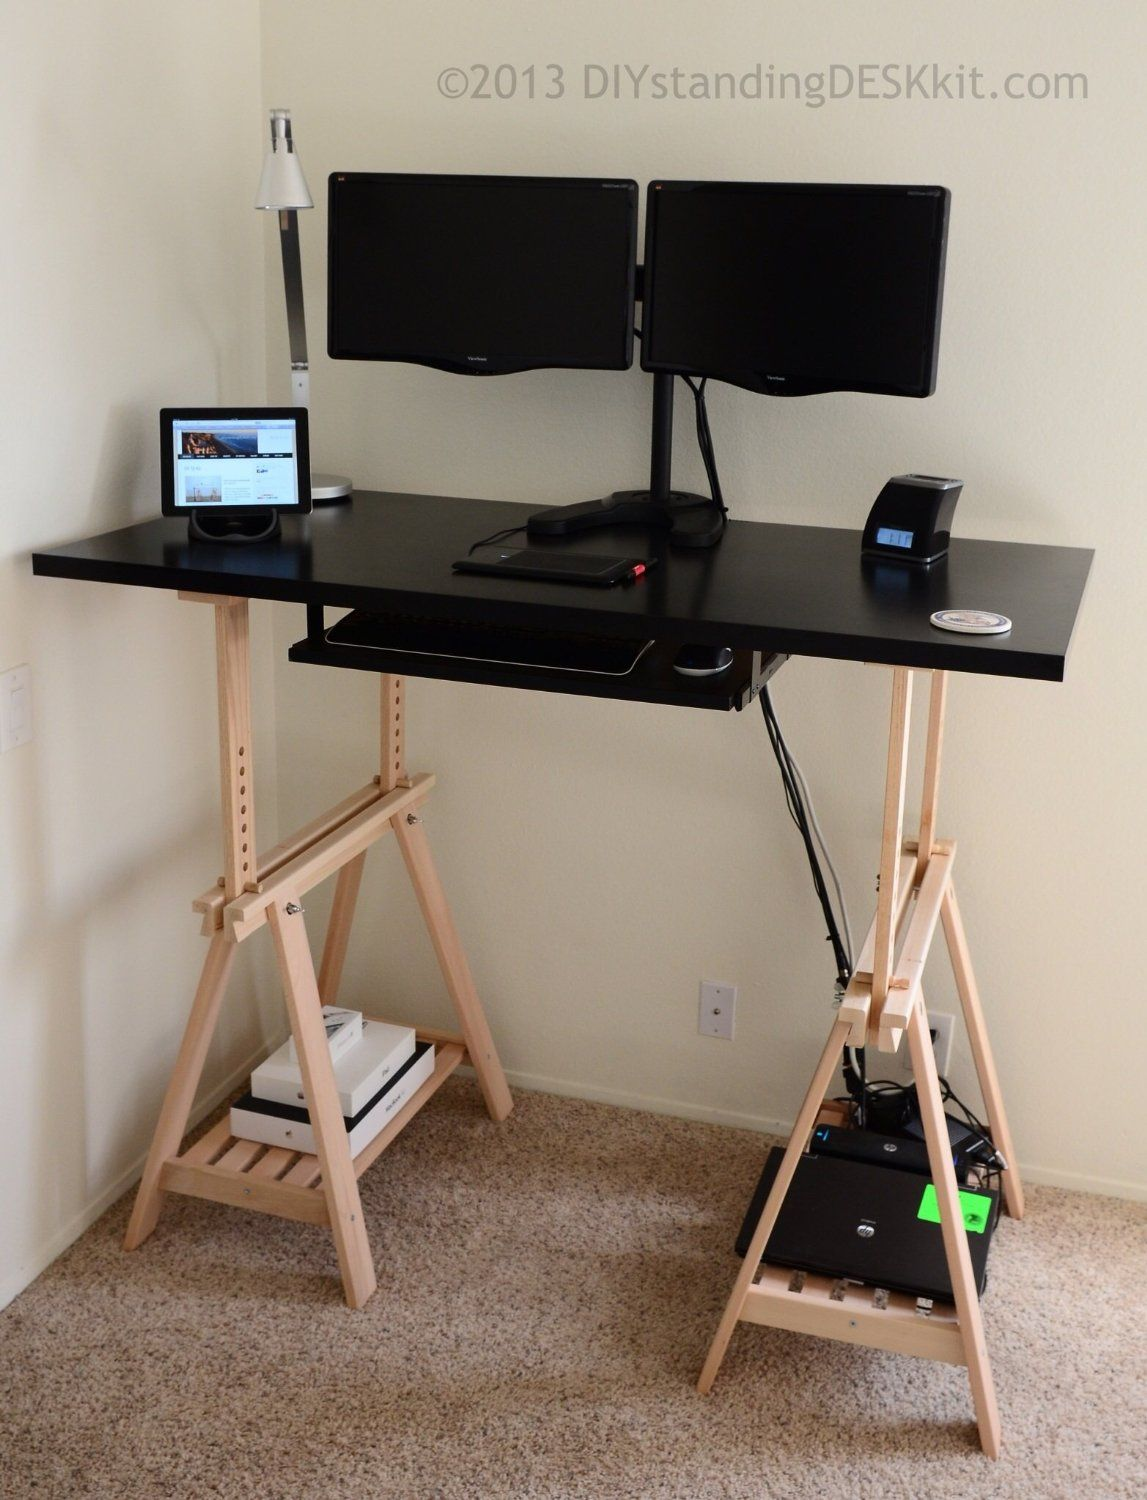 Magnificent Diy Standing Desk Kit The Adjustable Hight Standing Desk Download Free Architecture Designs Scobabritishbridgeorg